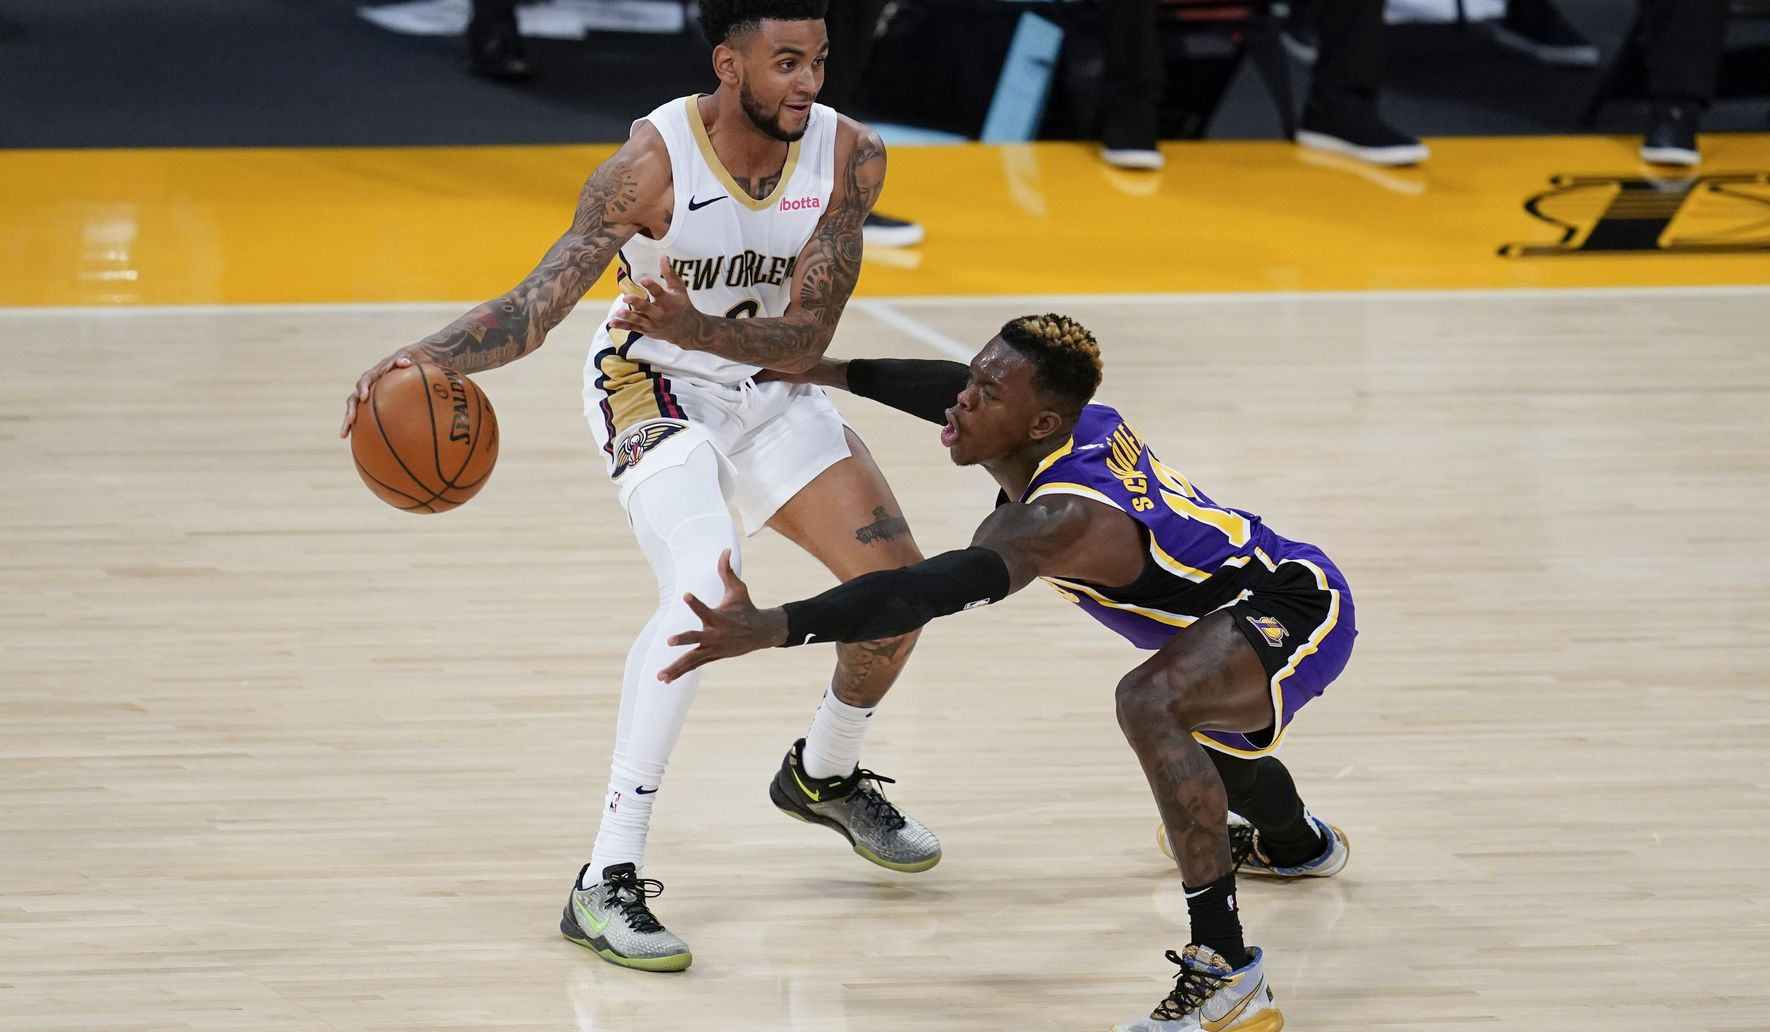 Pelicans_lakers_basketball_32759_c0-191-4564-2852_s1770x1032